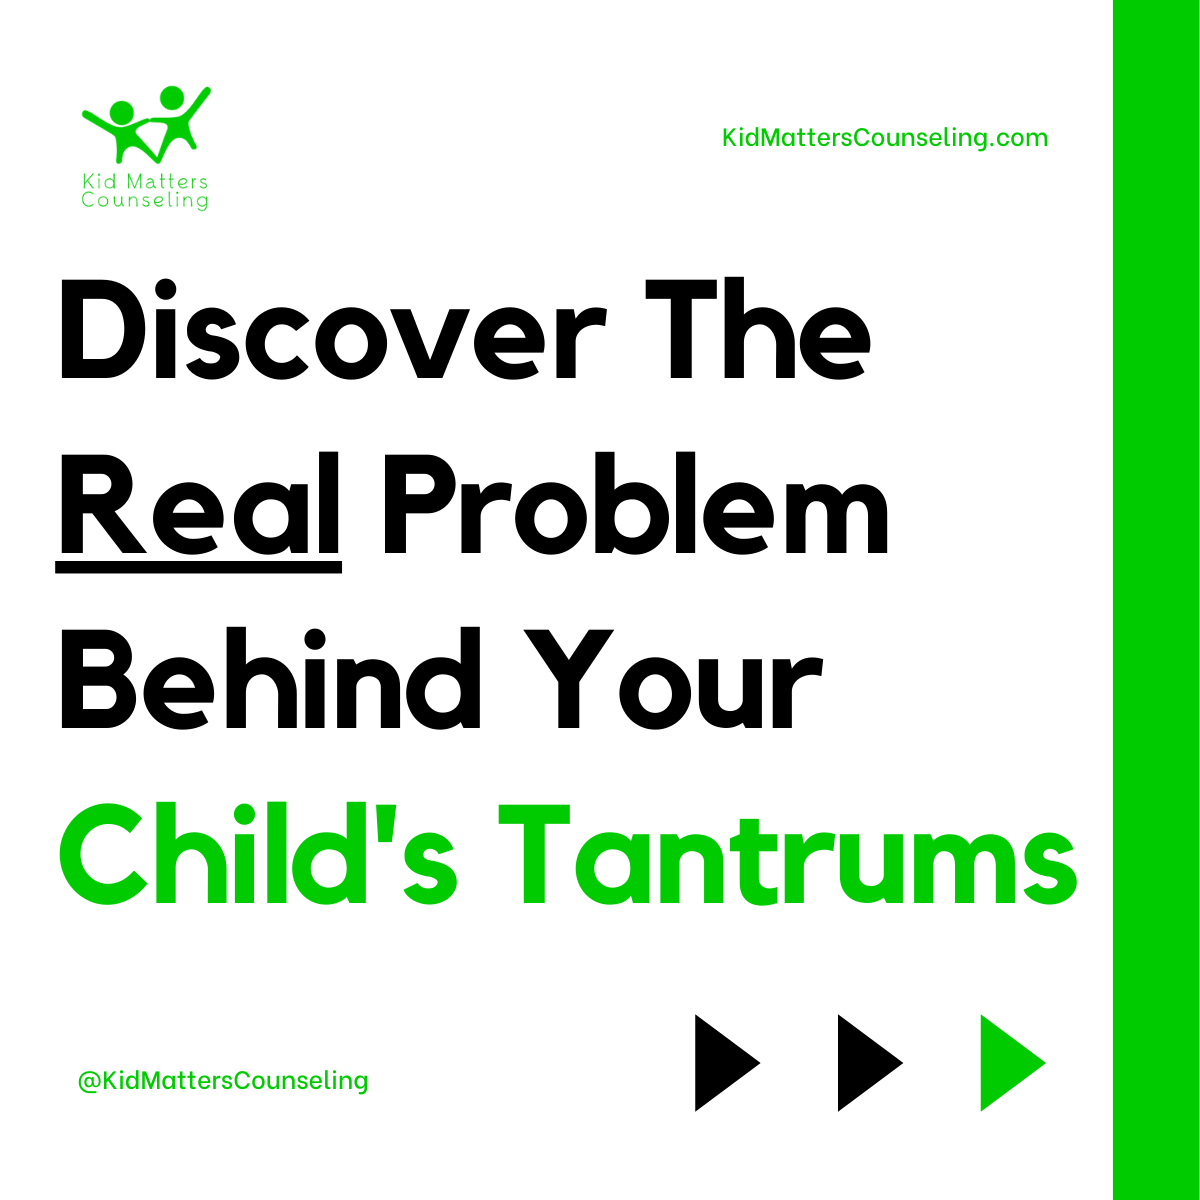 Discover the Real Problem Behind Your Child's Tantrums